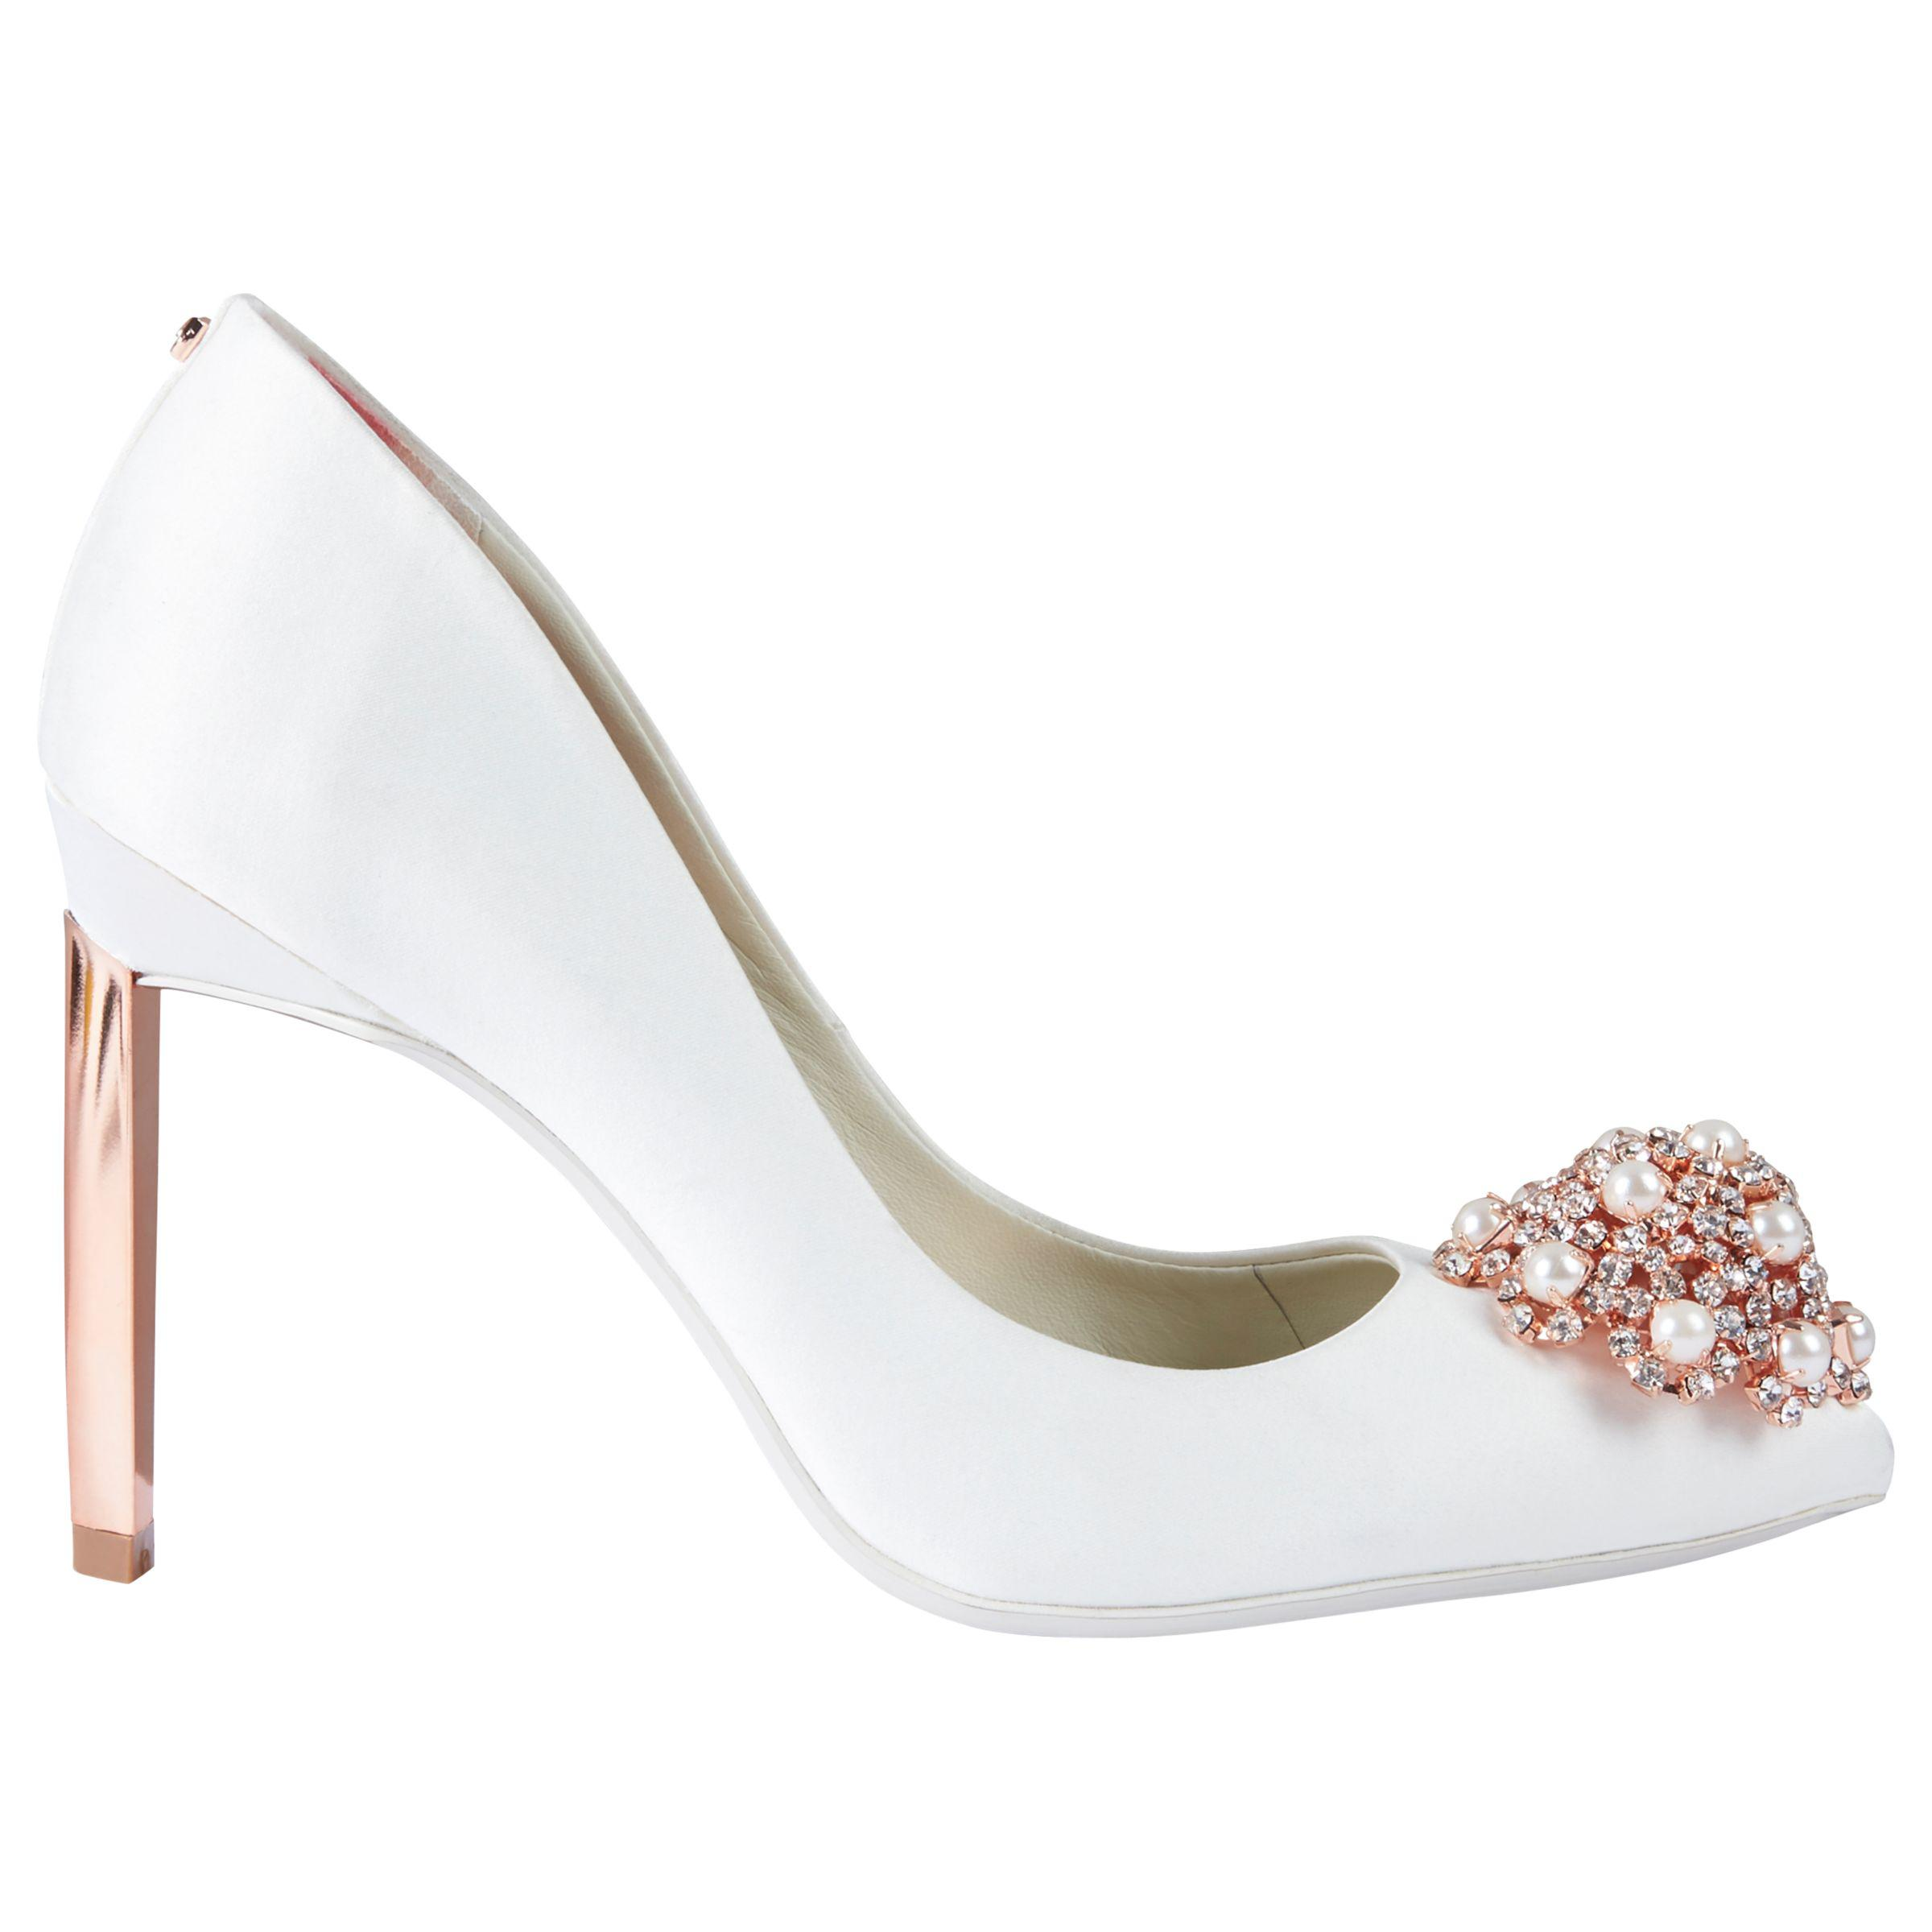 0c3ff20a9ef399 Ted Baker. Women s White Peetch 2 Embellished Stiletto Heel Court Shoes